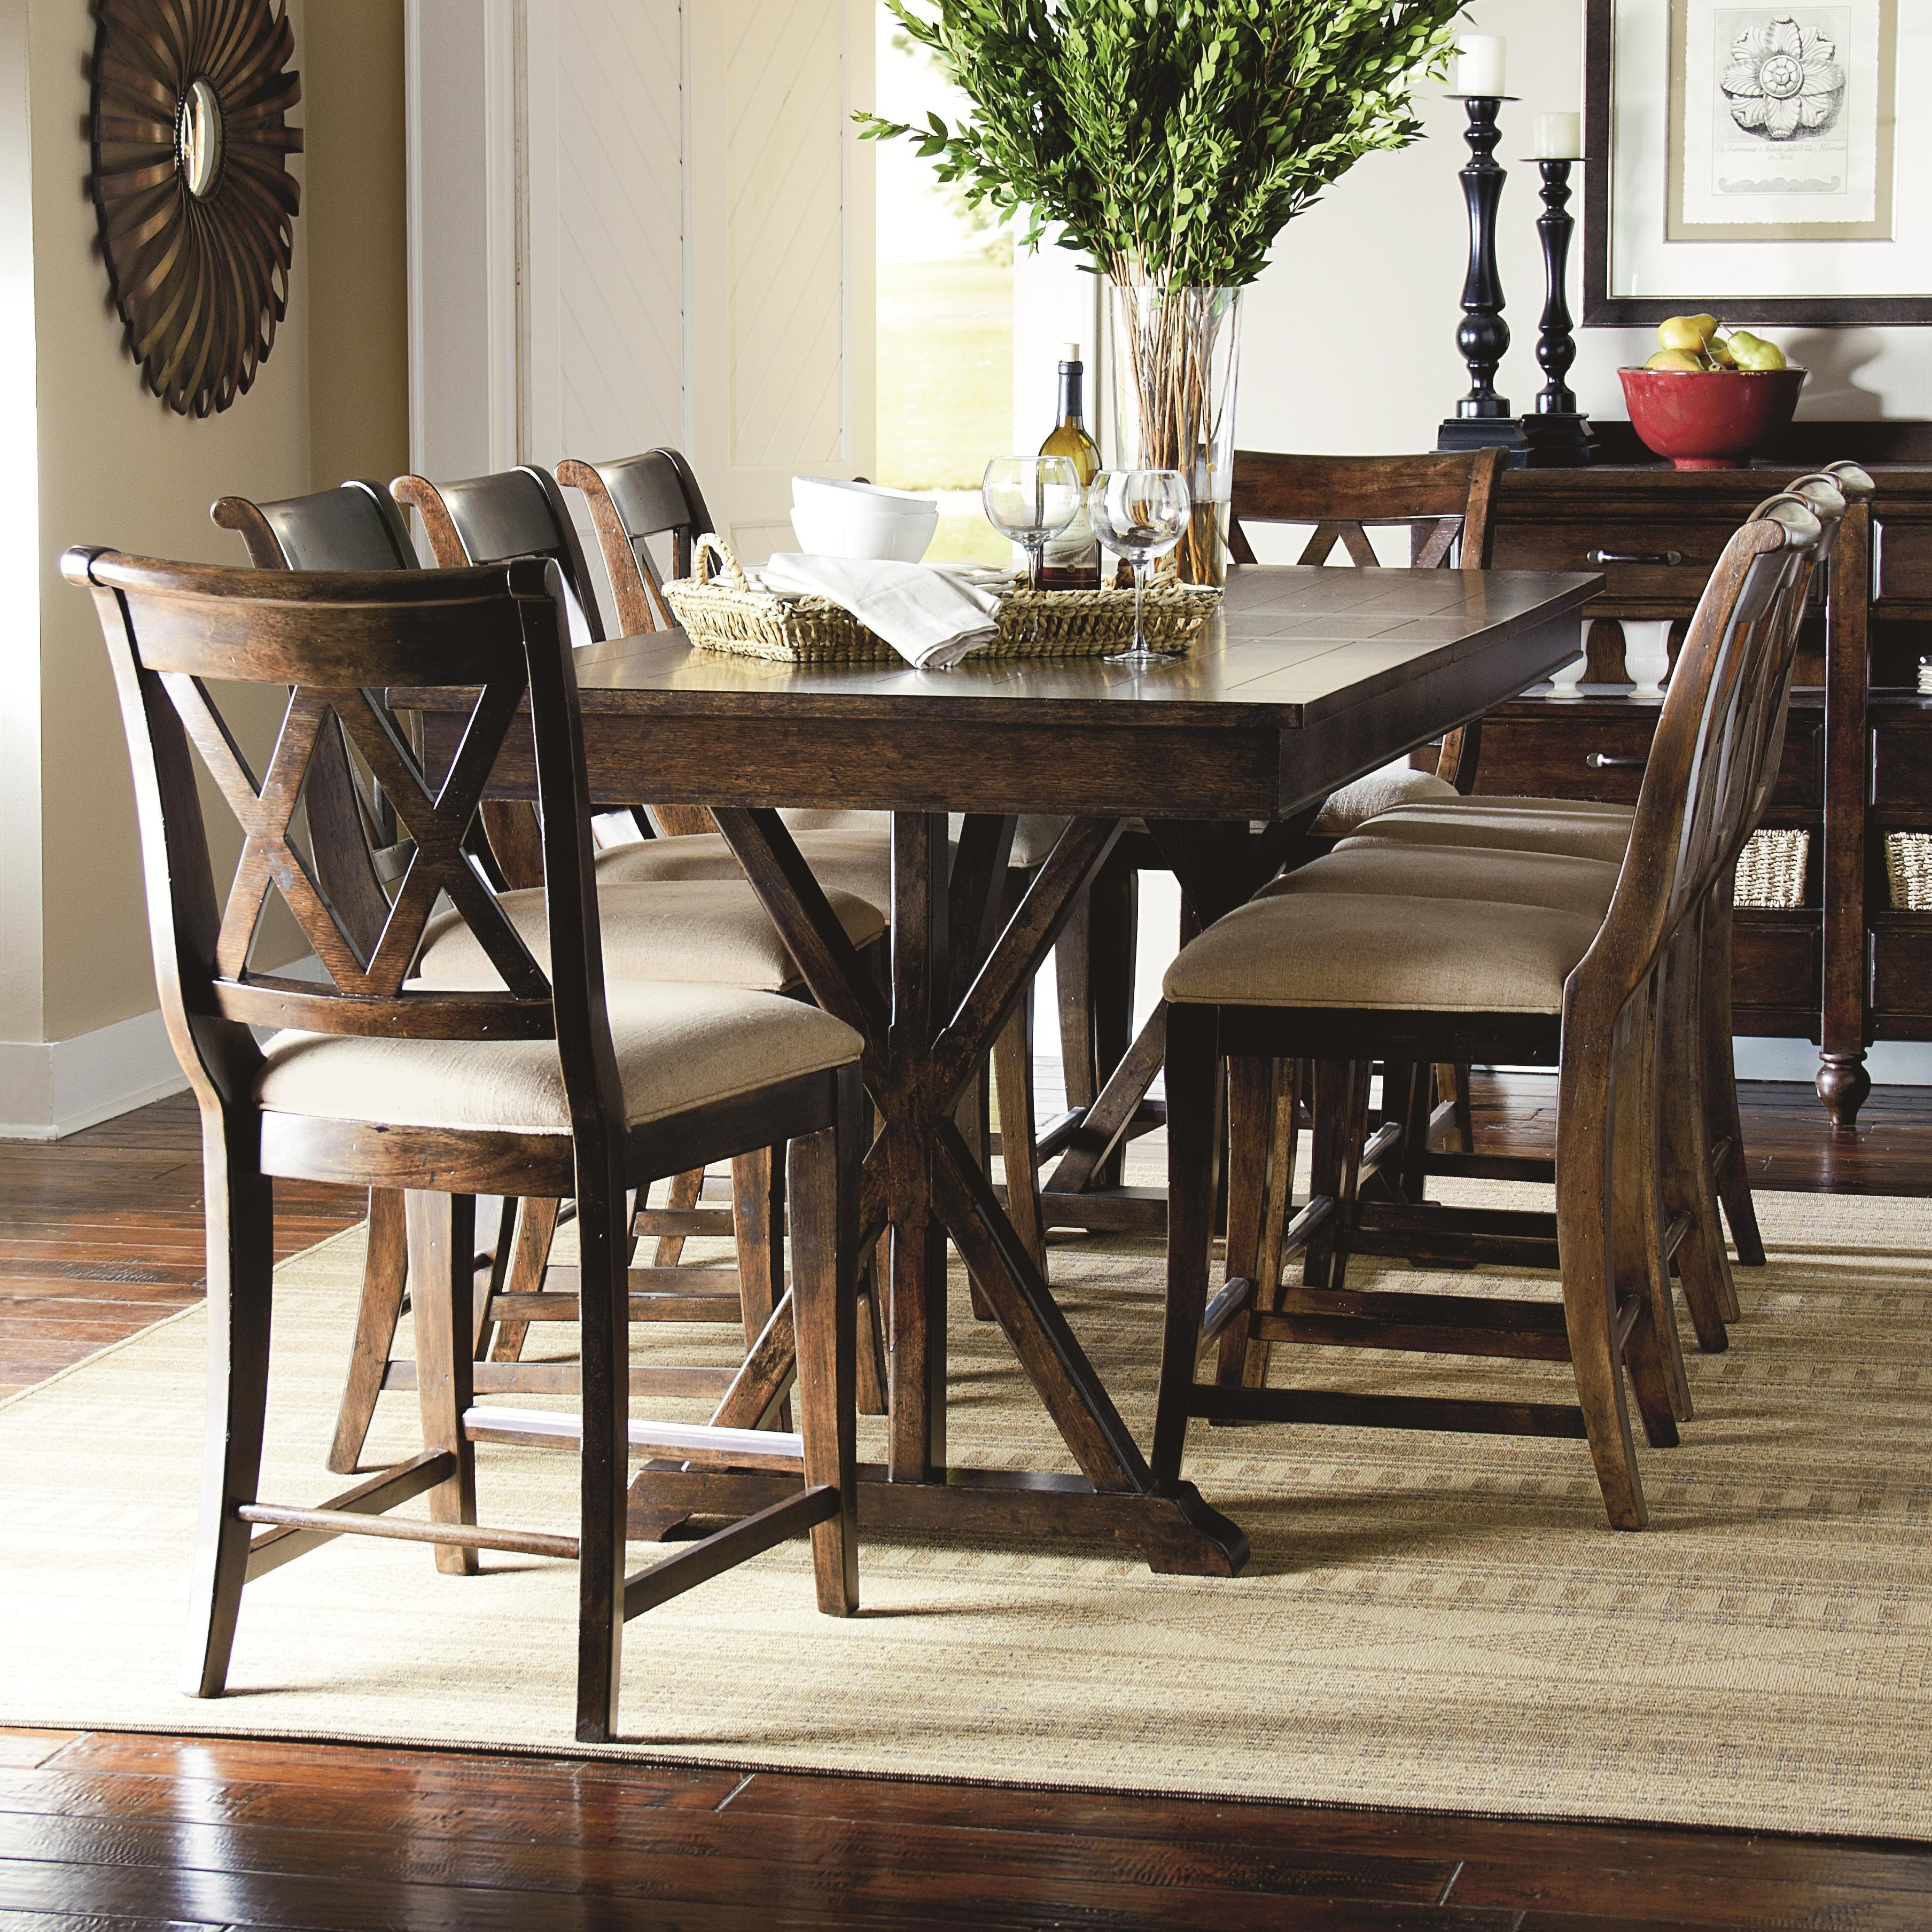 Cheery Caira Piece Extension Set Back Chairs Caira Piece Extension With Regard To Most Recent Chapleau Ii 9 Piece Extension Dining Tables With Side Chairs (View 17 of 20)